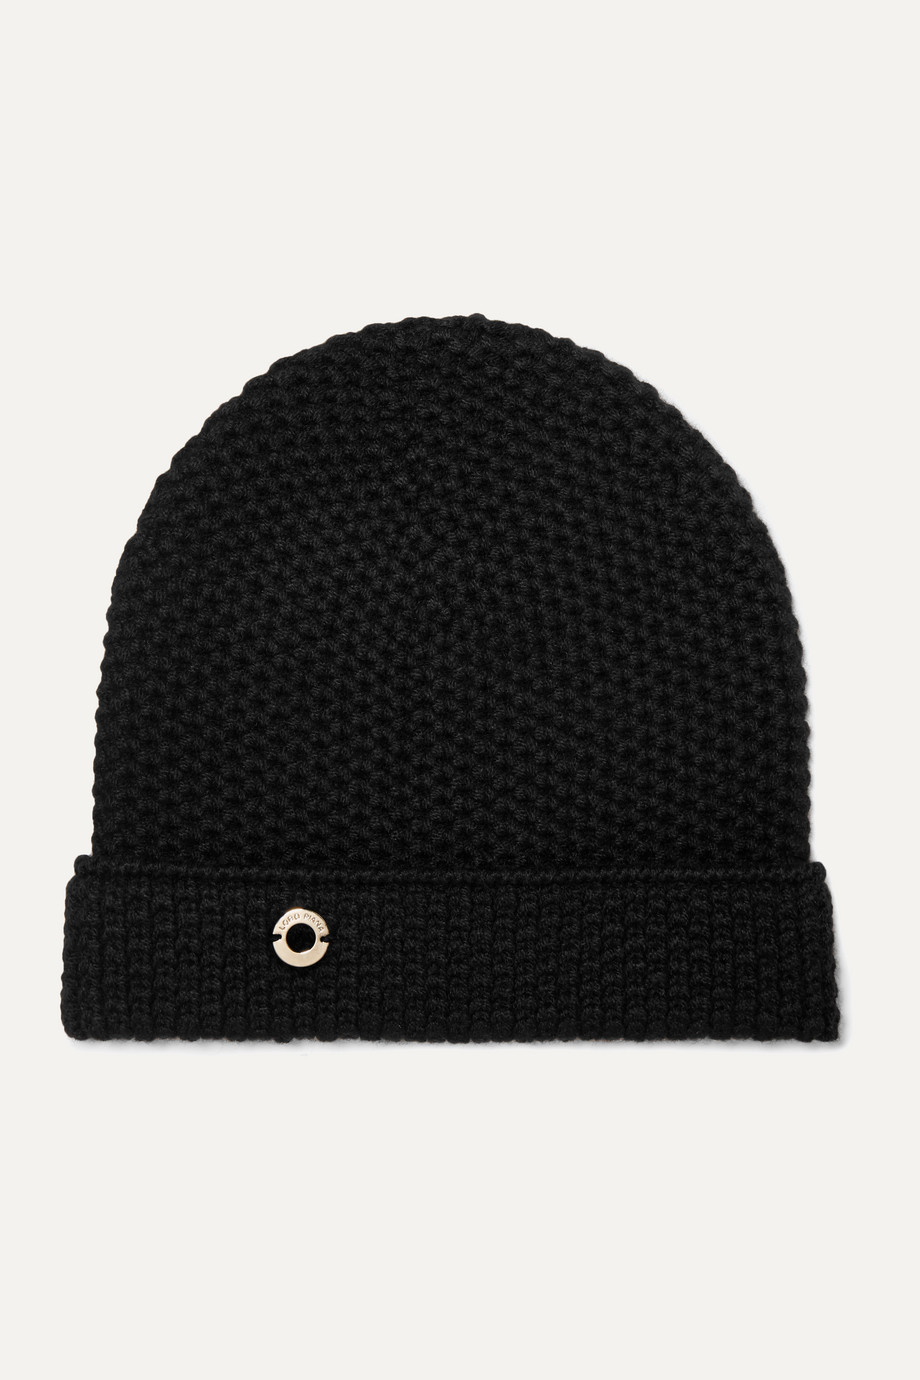 Loro Piana Rougemont crocheted cashmere beanie